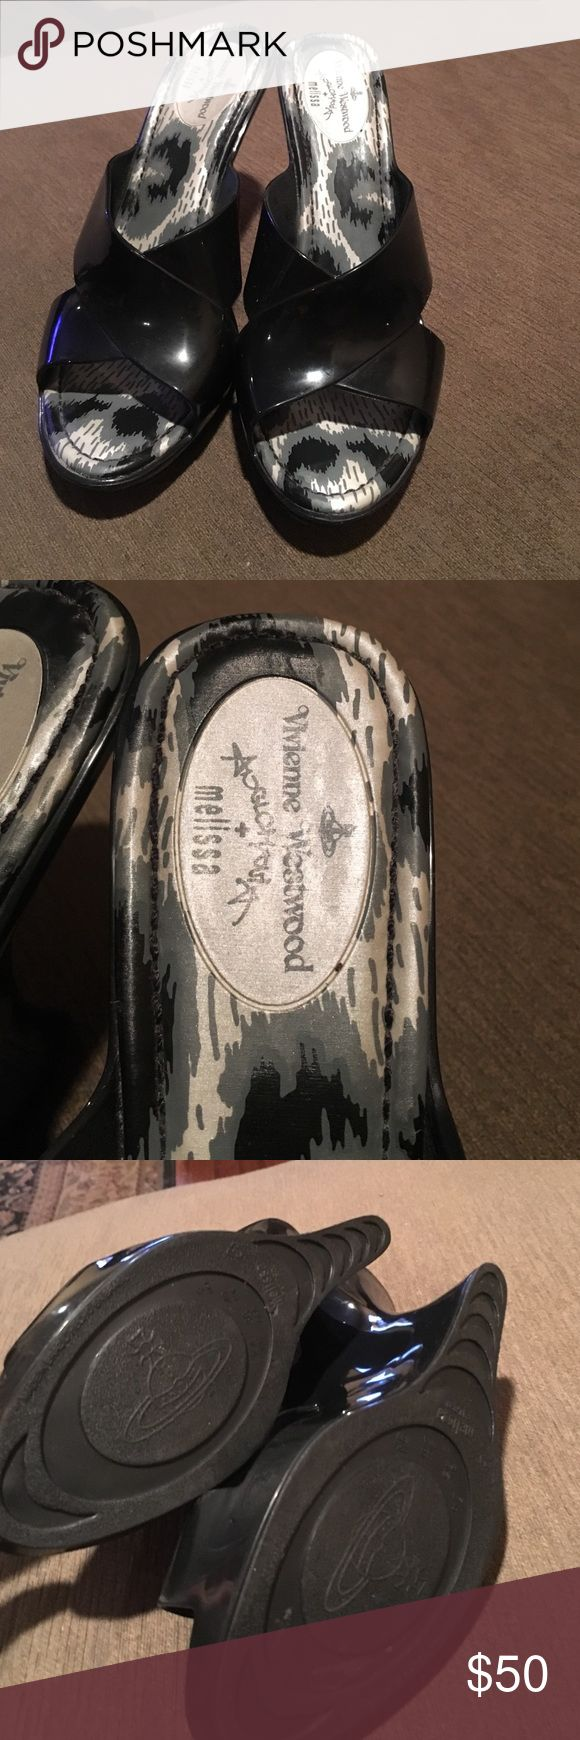 Vivienne Westwood  Anglomania+Melissa wedges Vivienne Westwood Anglomania+Melissa black wedge.The classic slip on with two thick crossed straps that comfortably keep your foot secure while teetering on a fabulous Melissa Black X Vivienne Westwood Wedge Vivienne Westwood Shoes Wedges